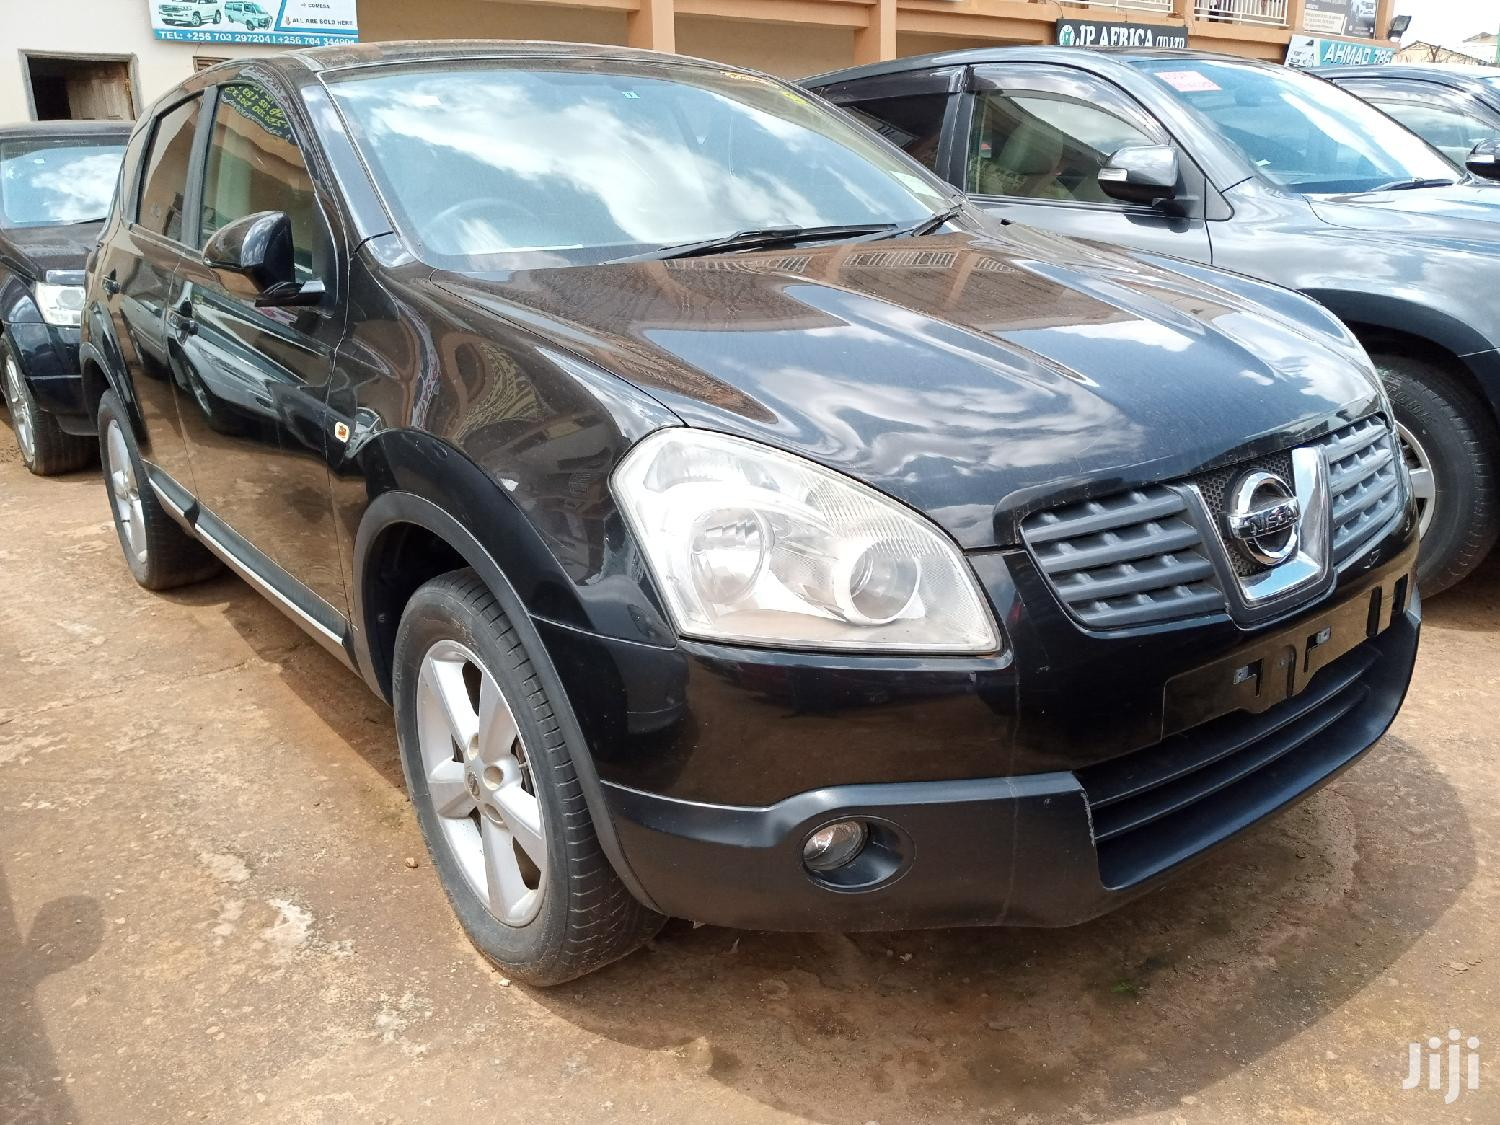 New Nissan Dualis 2007 Black